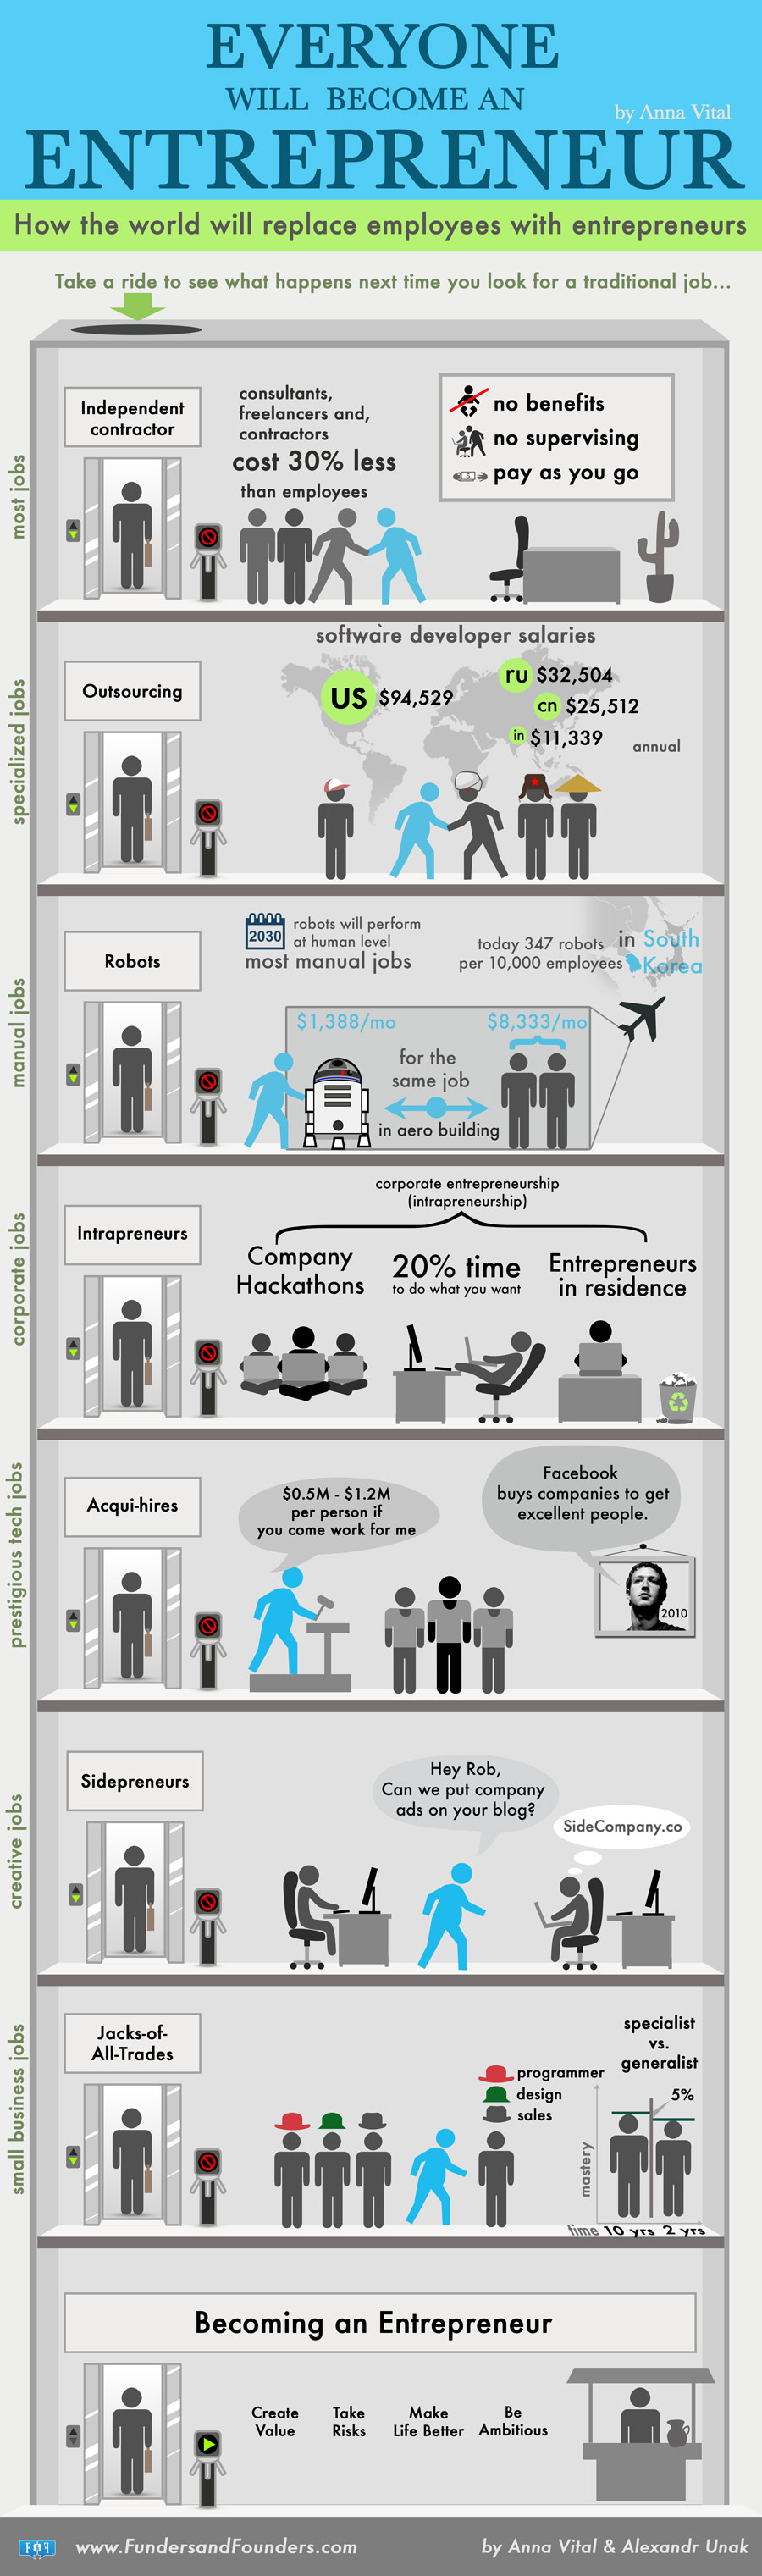 everyone-will-become-an-entrepreneur